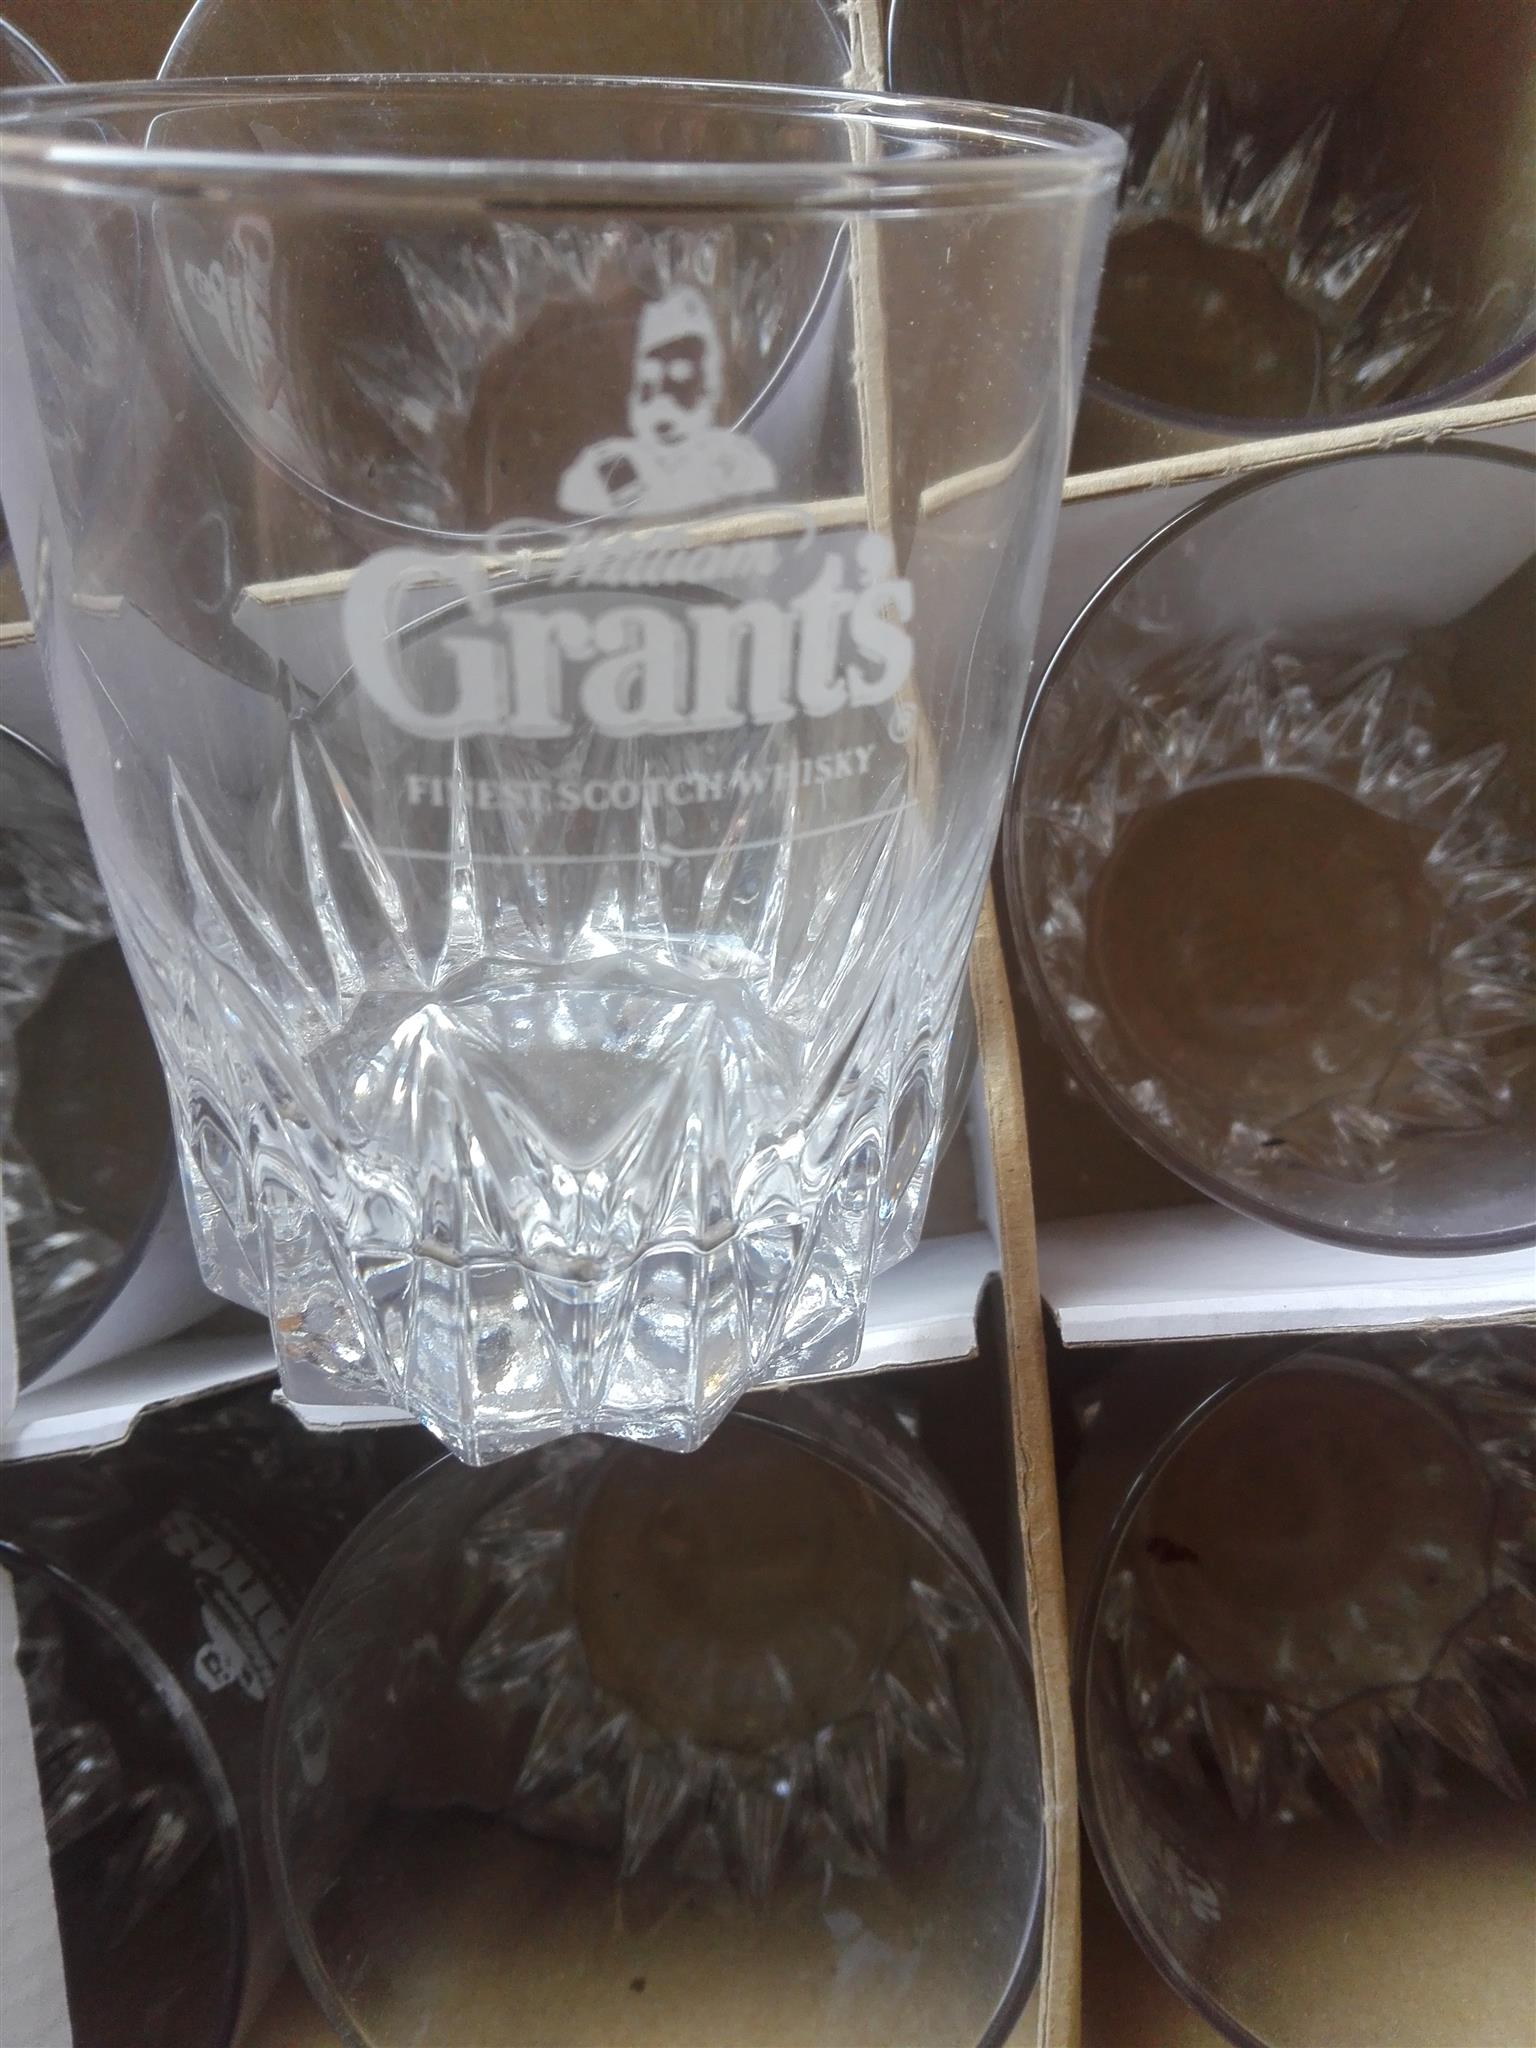 Grants Scottish whisky glasses